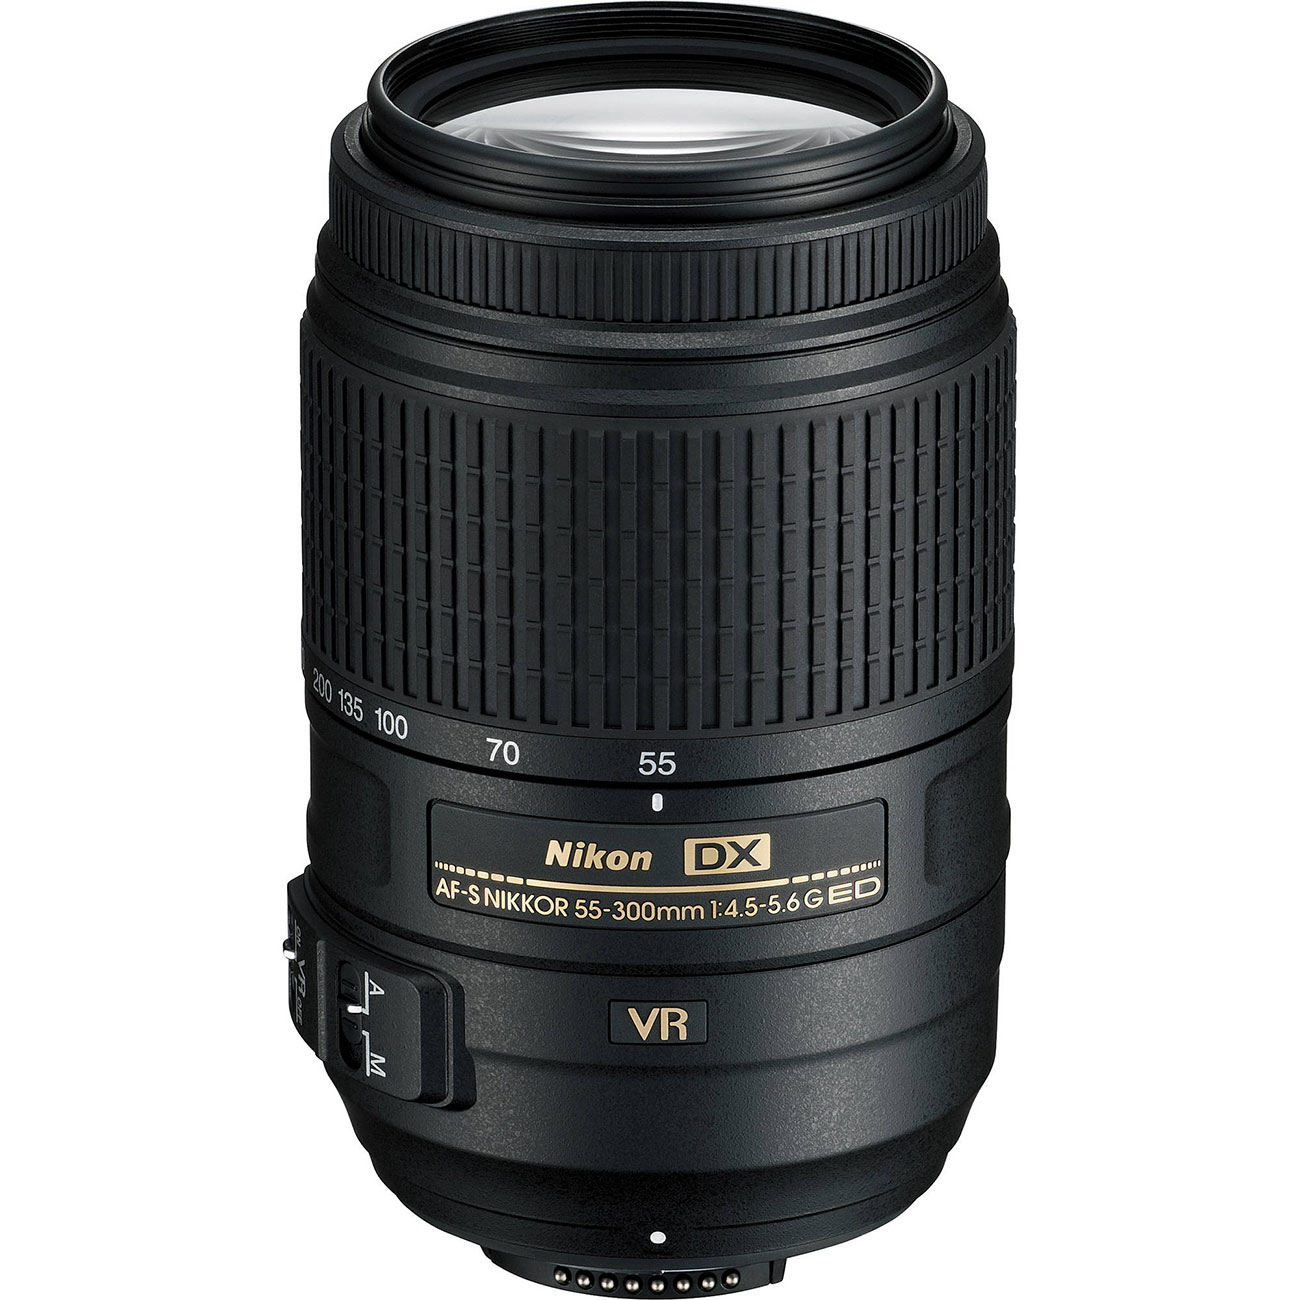 Nikon 55-300mm f/4.5-5.6G VR DX AF-S ED Zoom-Nikkor Lens - Factory Refurbished includes Full 1 Year Warranty